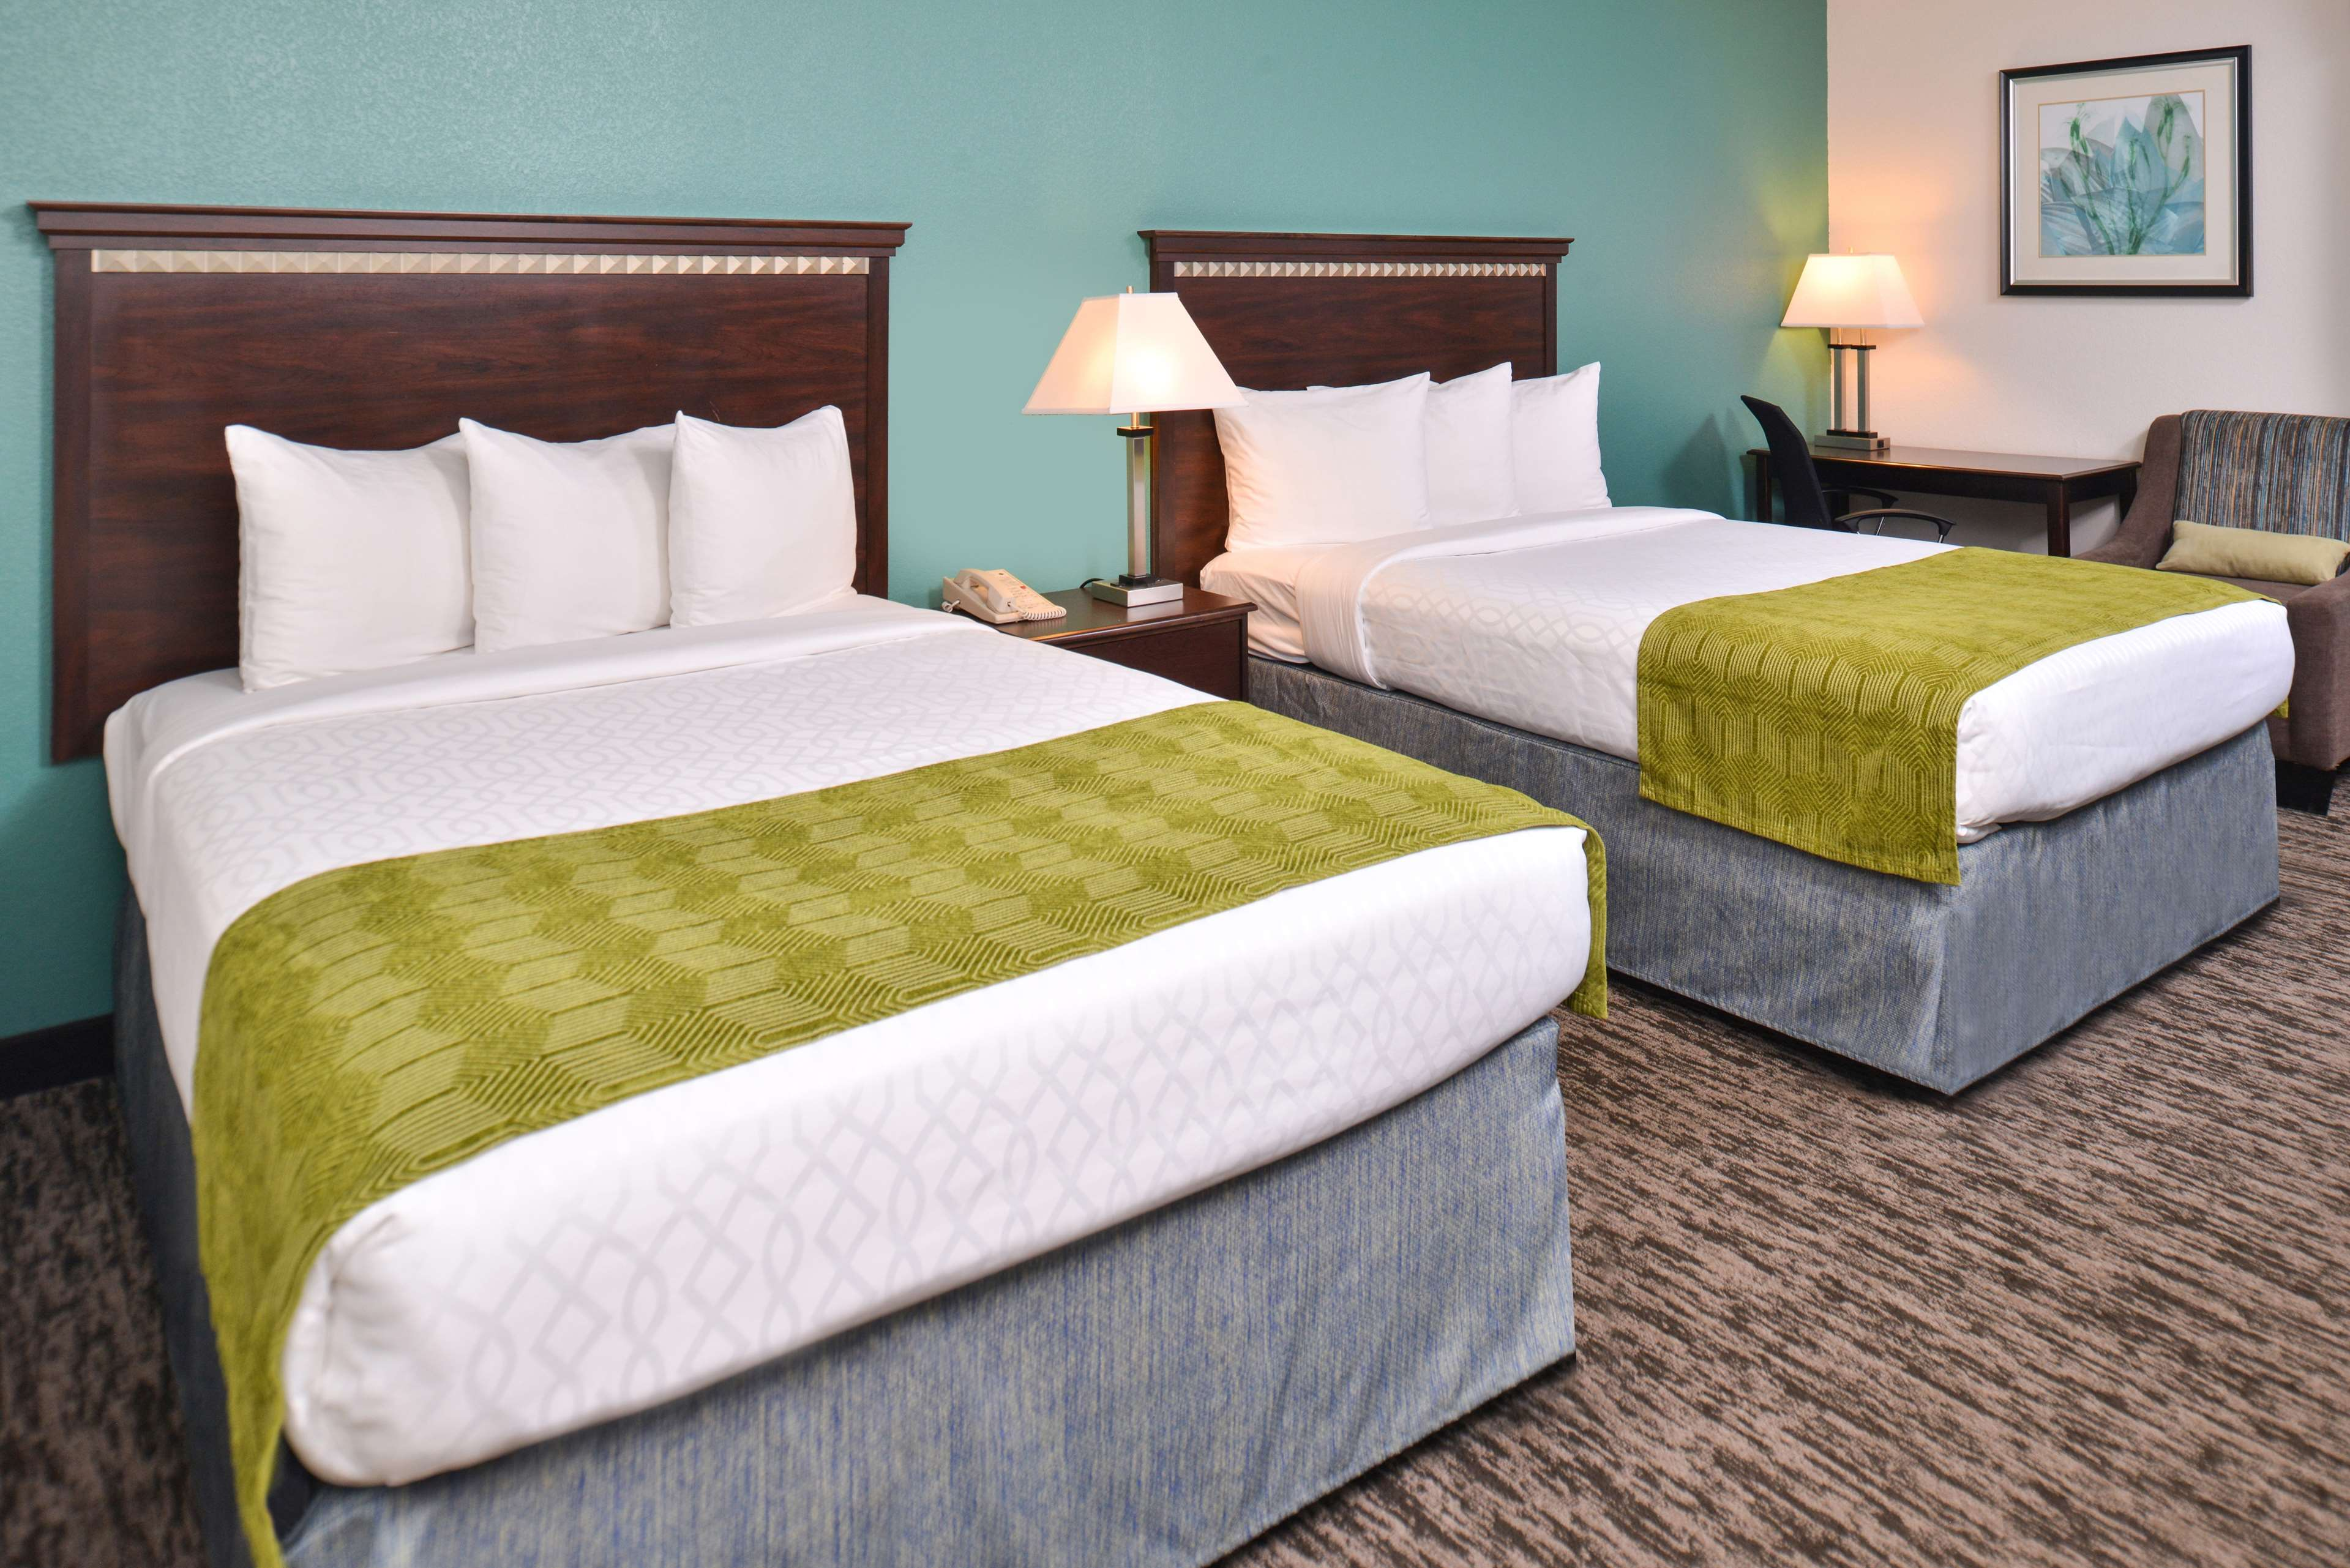 Best Western Plus Chicagoland - Countryside image 23